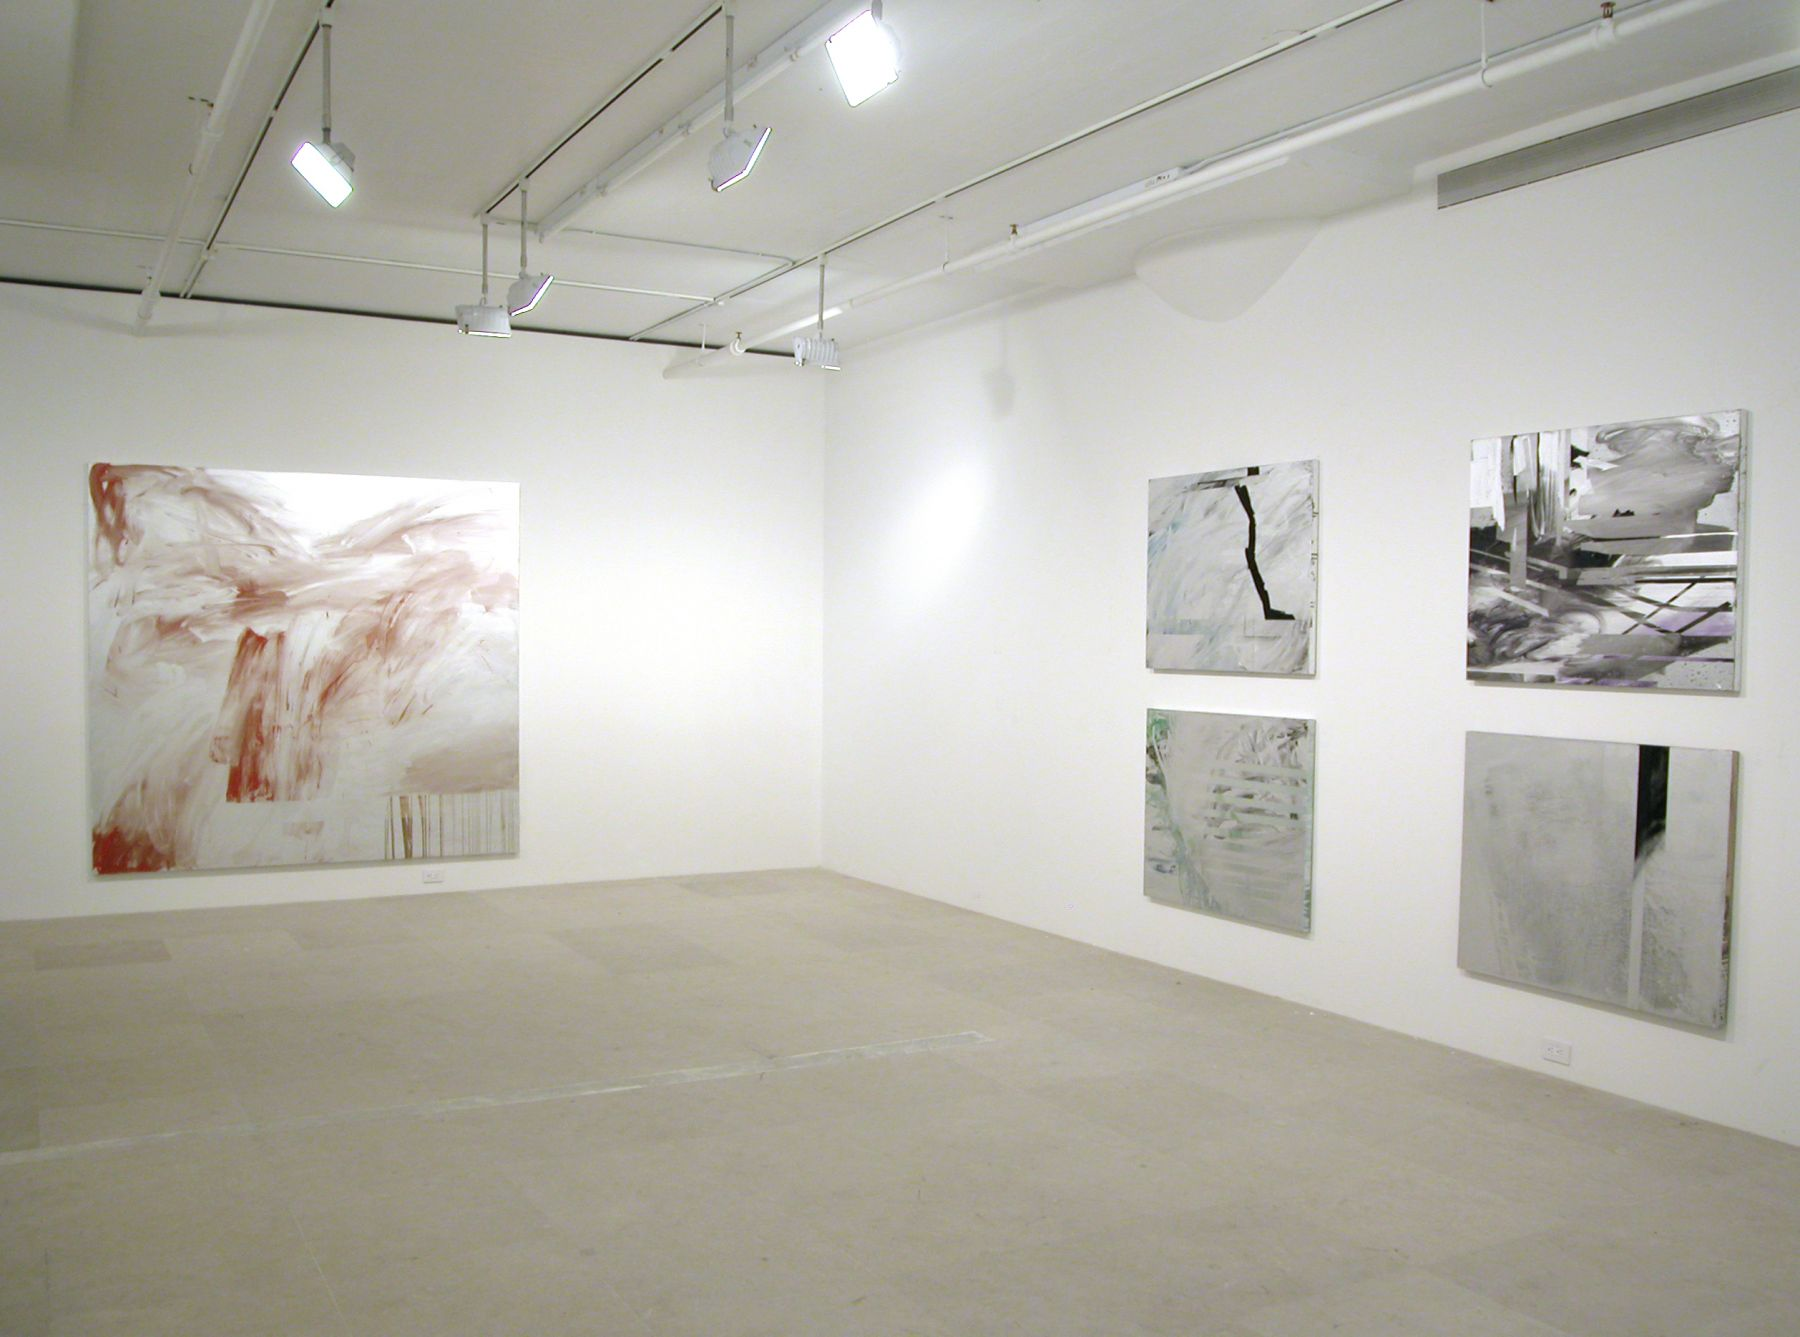 Installation view, Past Out, Greene Naftali, New York, 2006